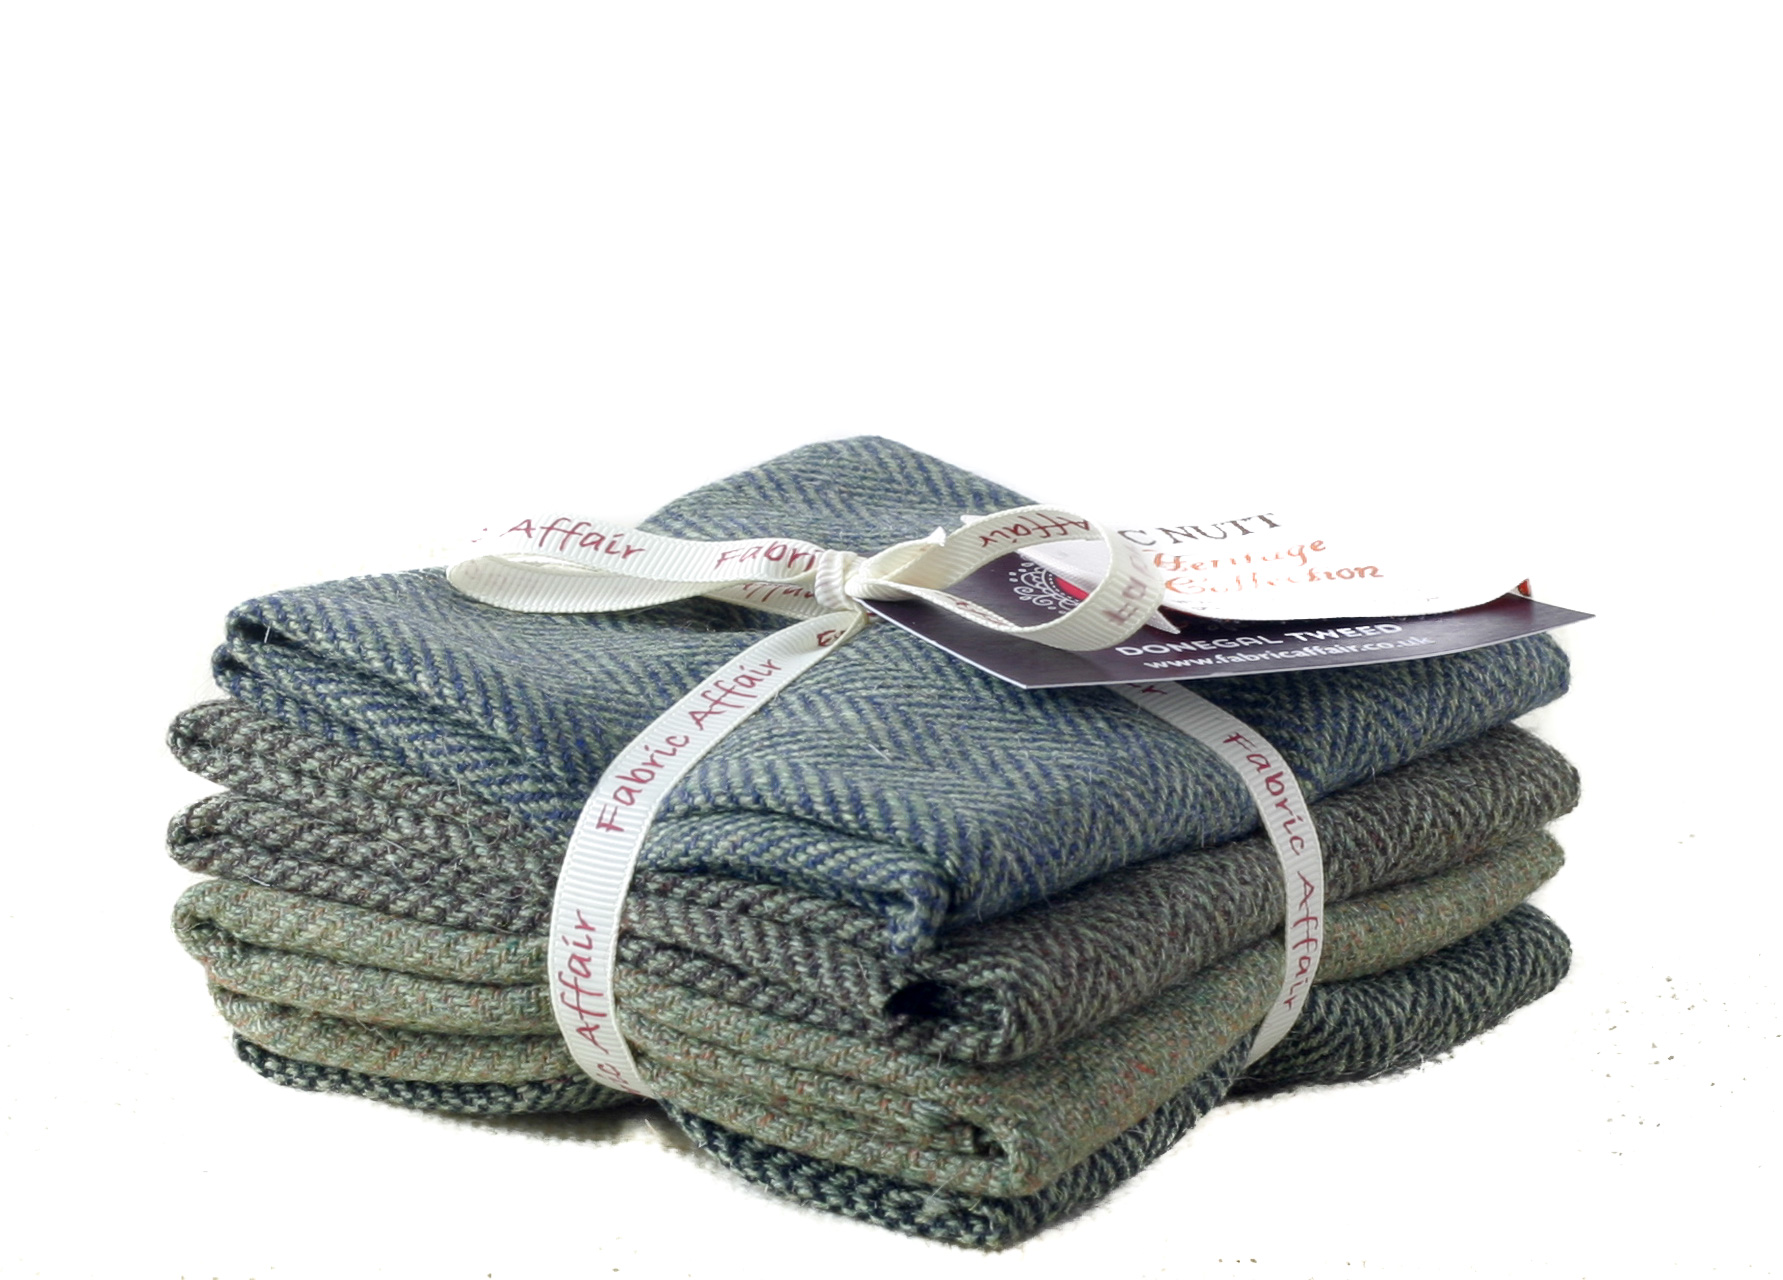 Donegal Tweed by Fabric Affair: Heritage Collection, Herringbone Bundle of 8th's.